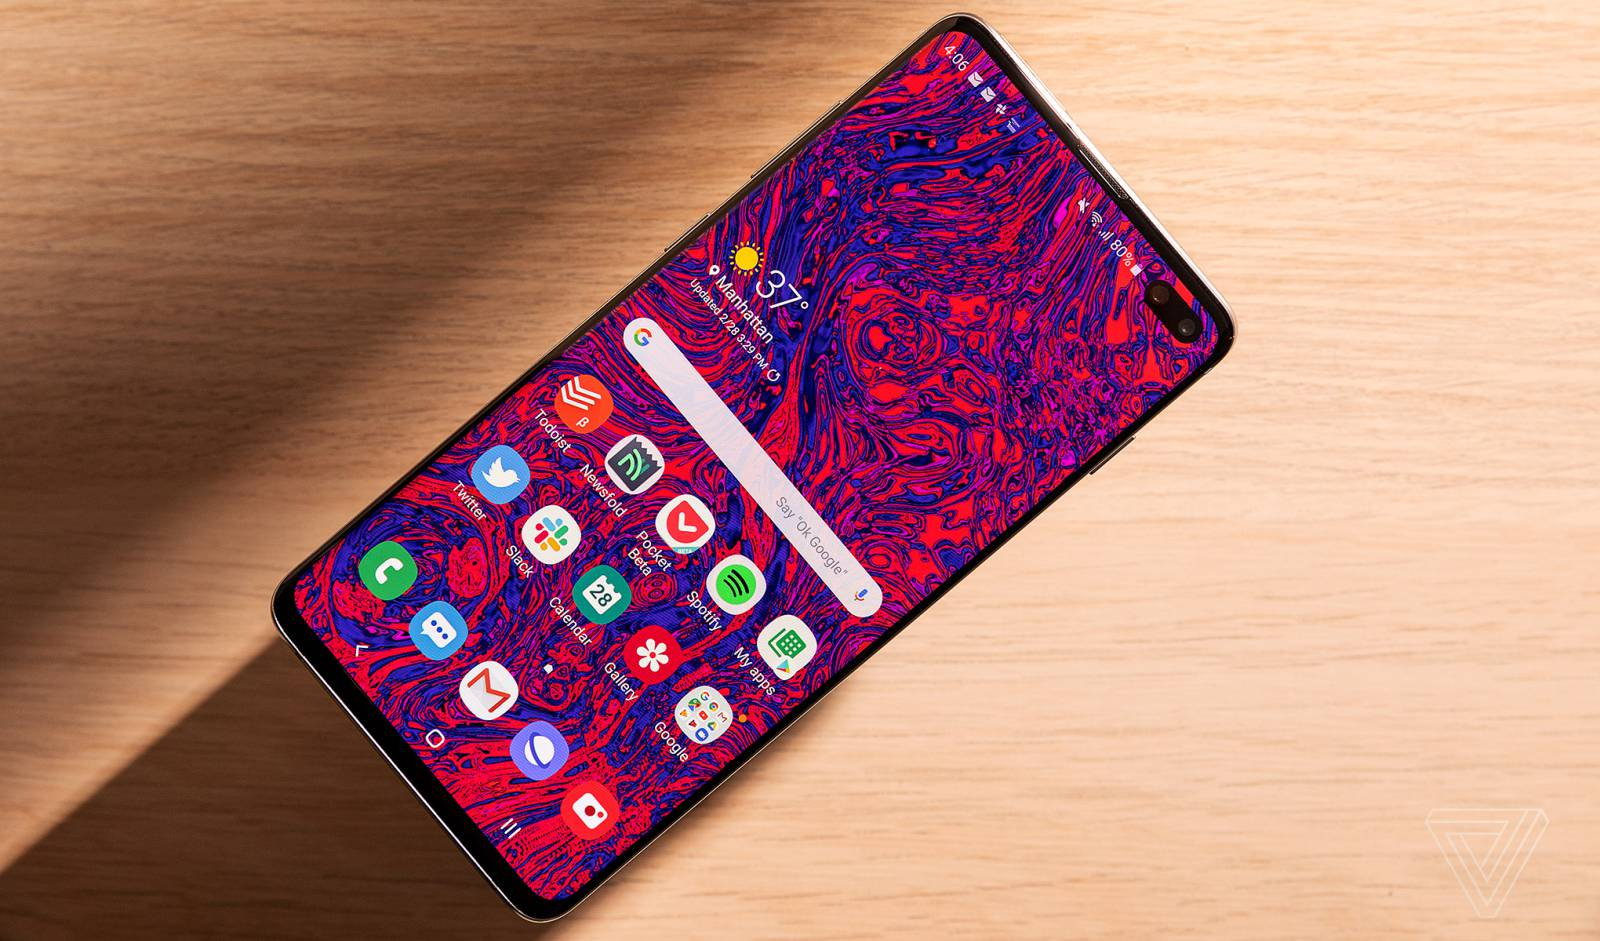 Samsung GALAXY S10 update